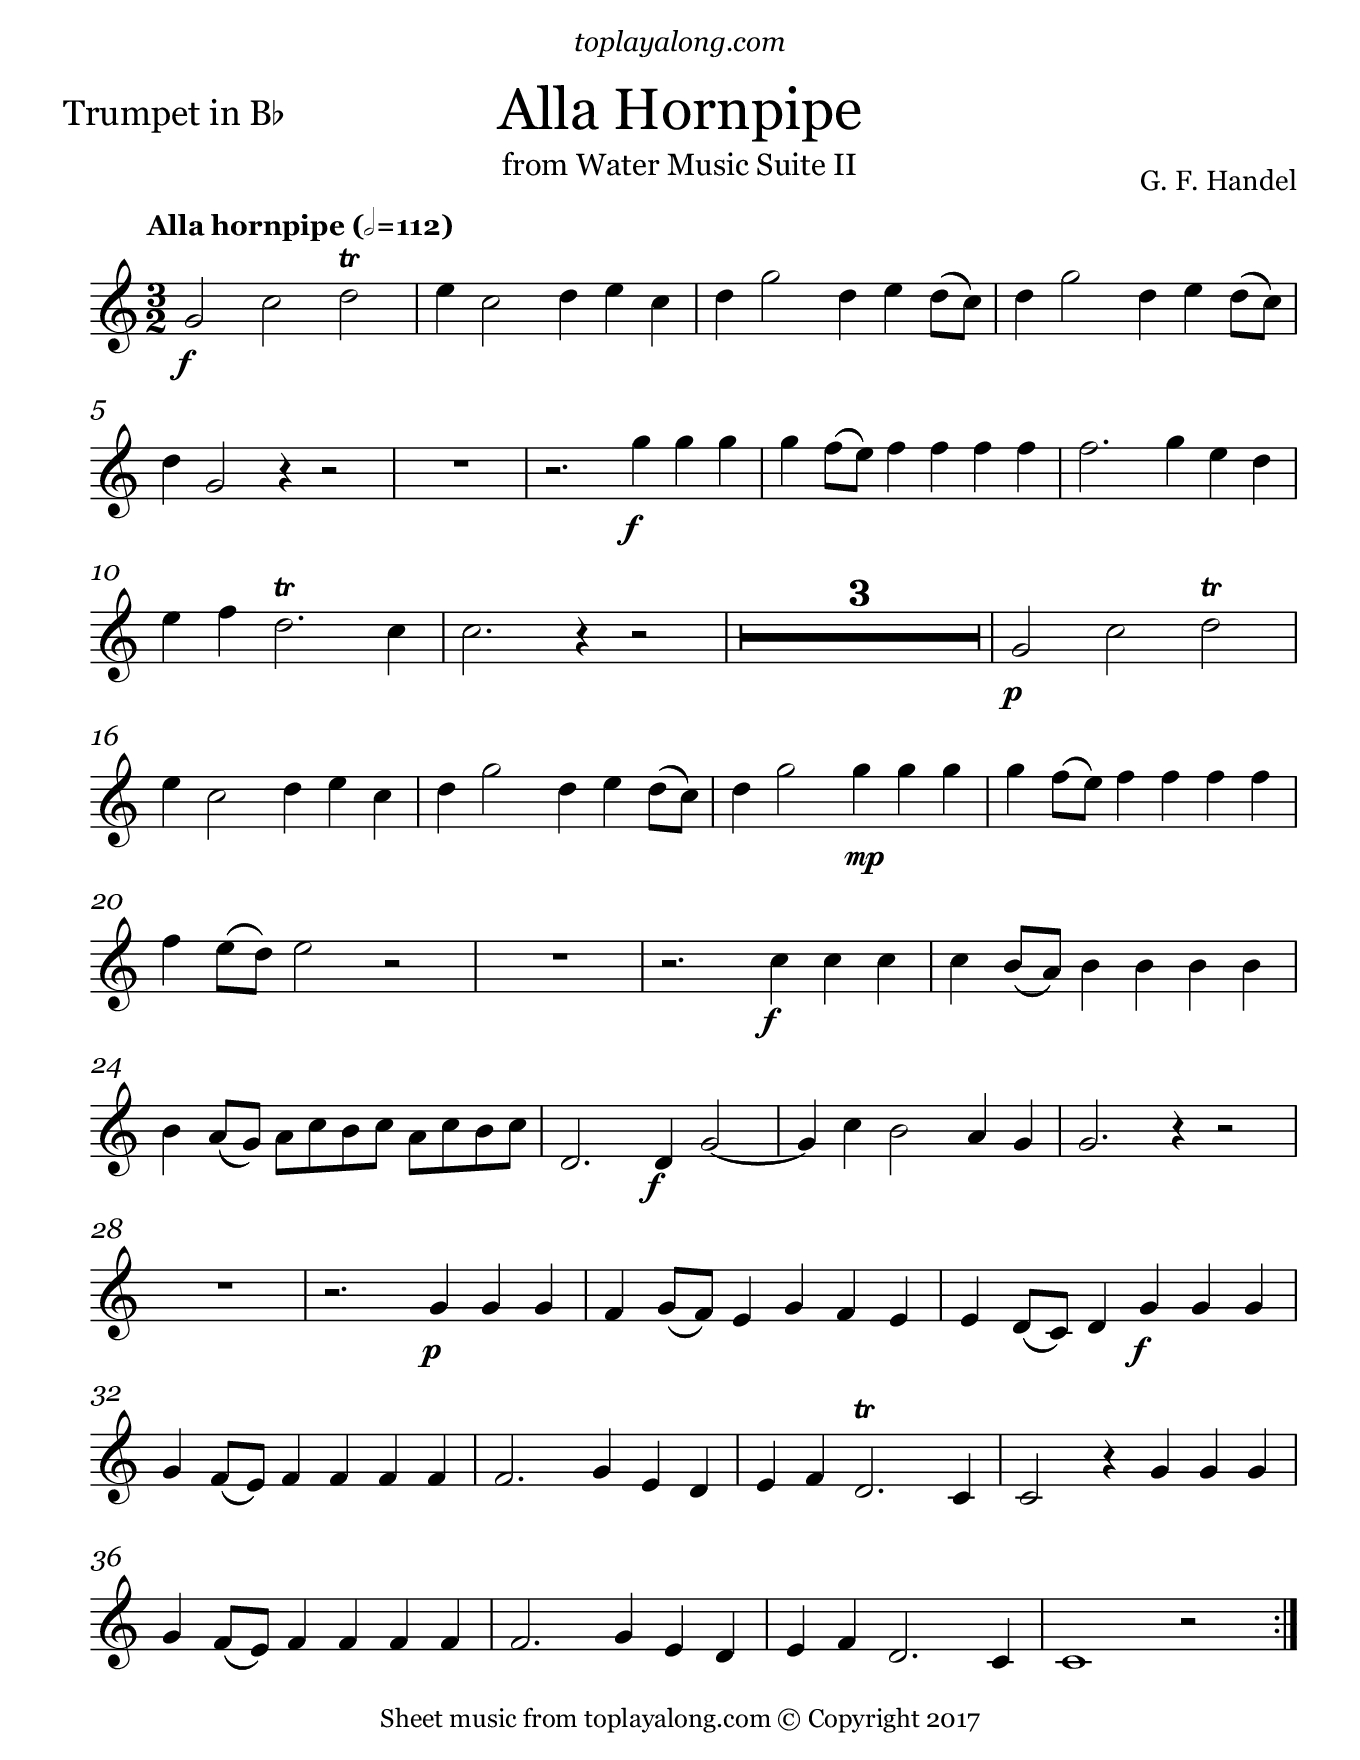 Free Trumpet Sheet Music For Alla Hornpipe From Water Music Suite Ii - Free Printable Sheet Music For Trumpet